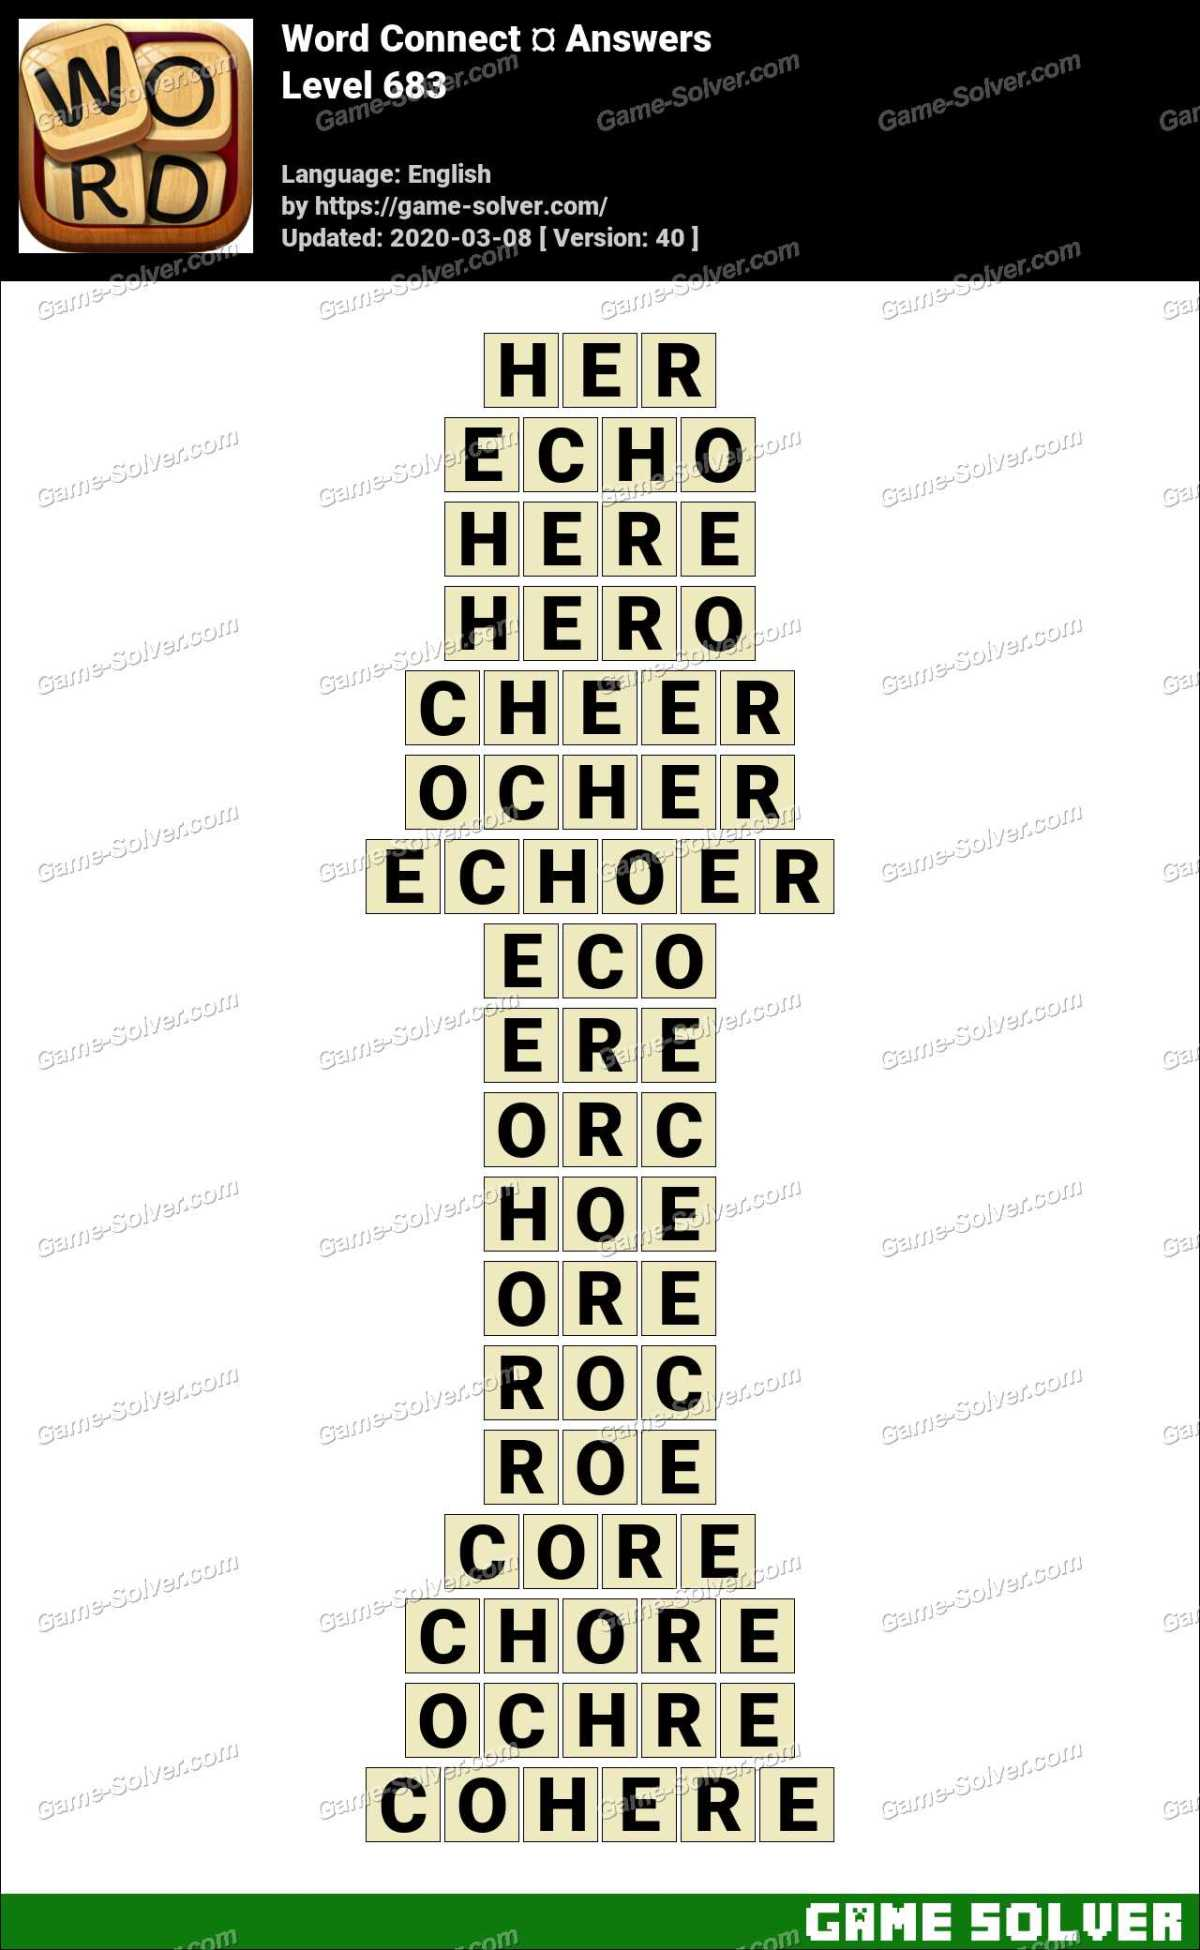 Word Connect Level 683 Answers